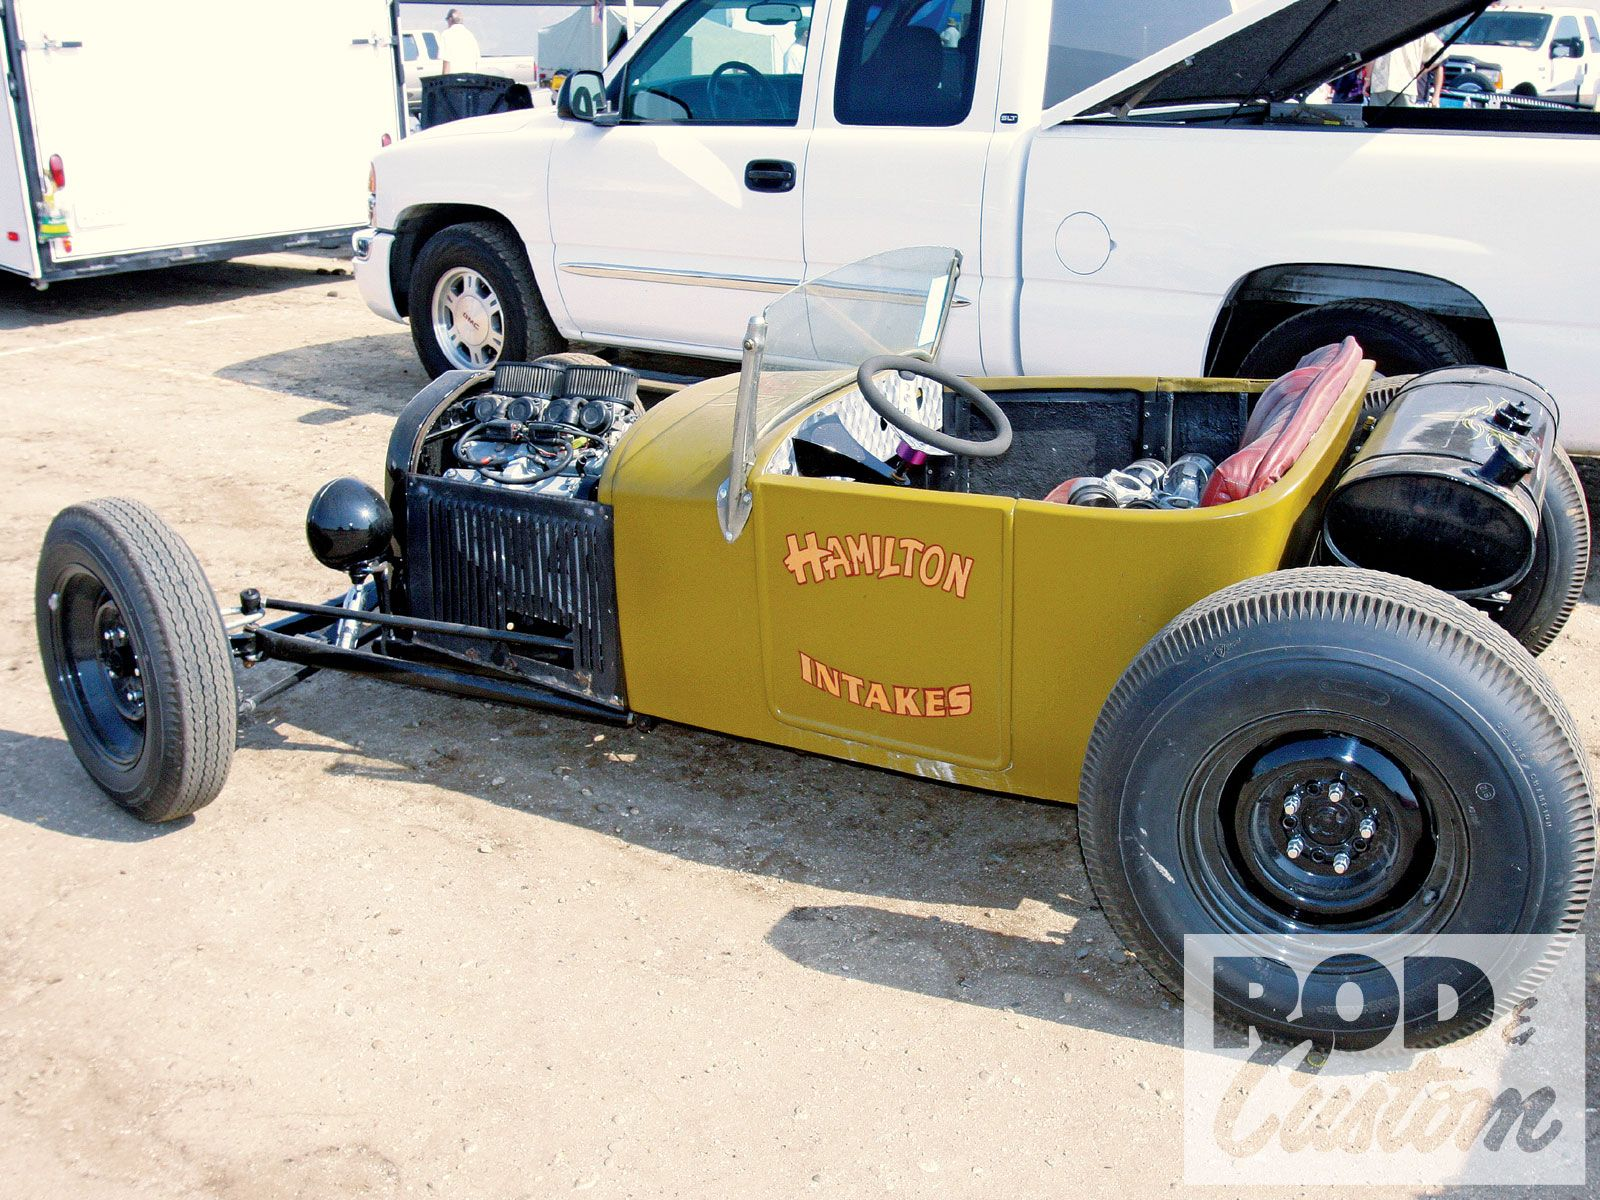 Old Hot Rods | Hot Rod Reunion Vintage Race Cars Motorcycle Engine ...